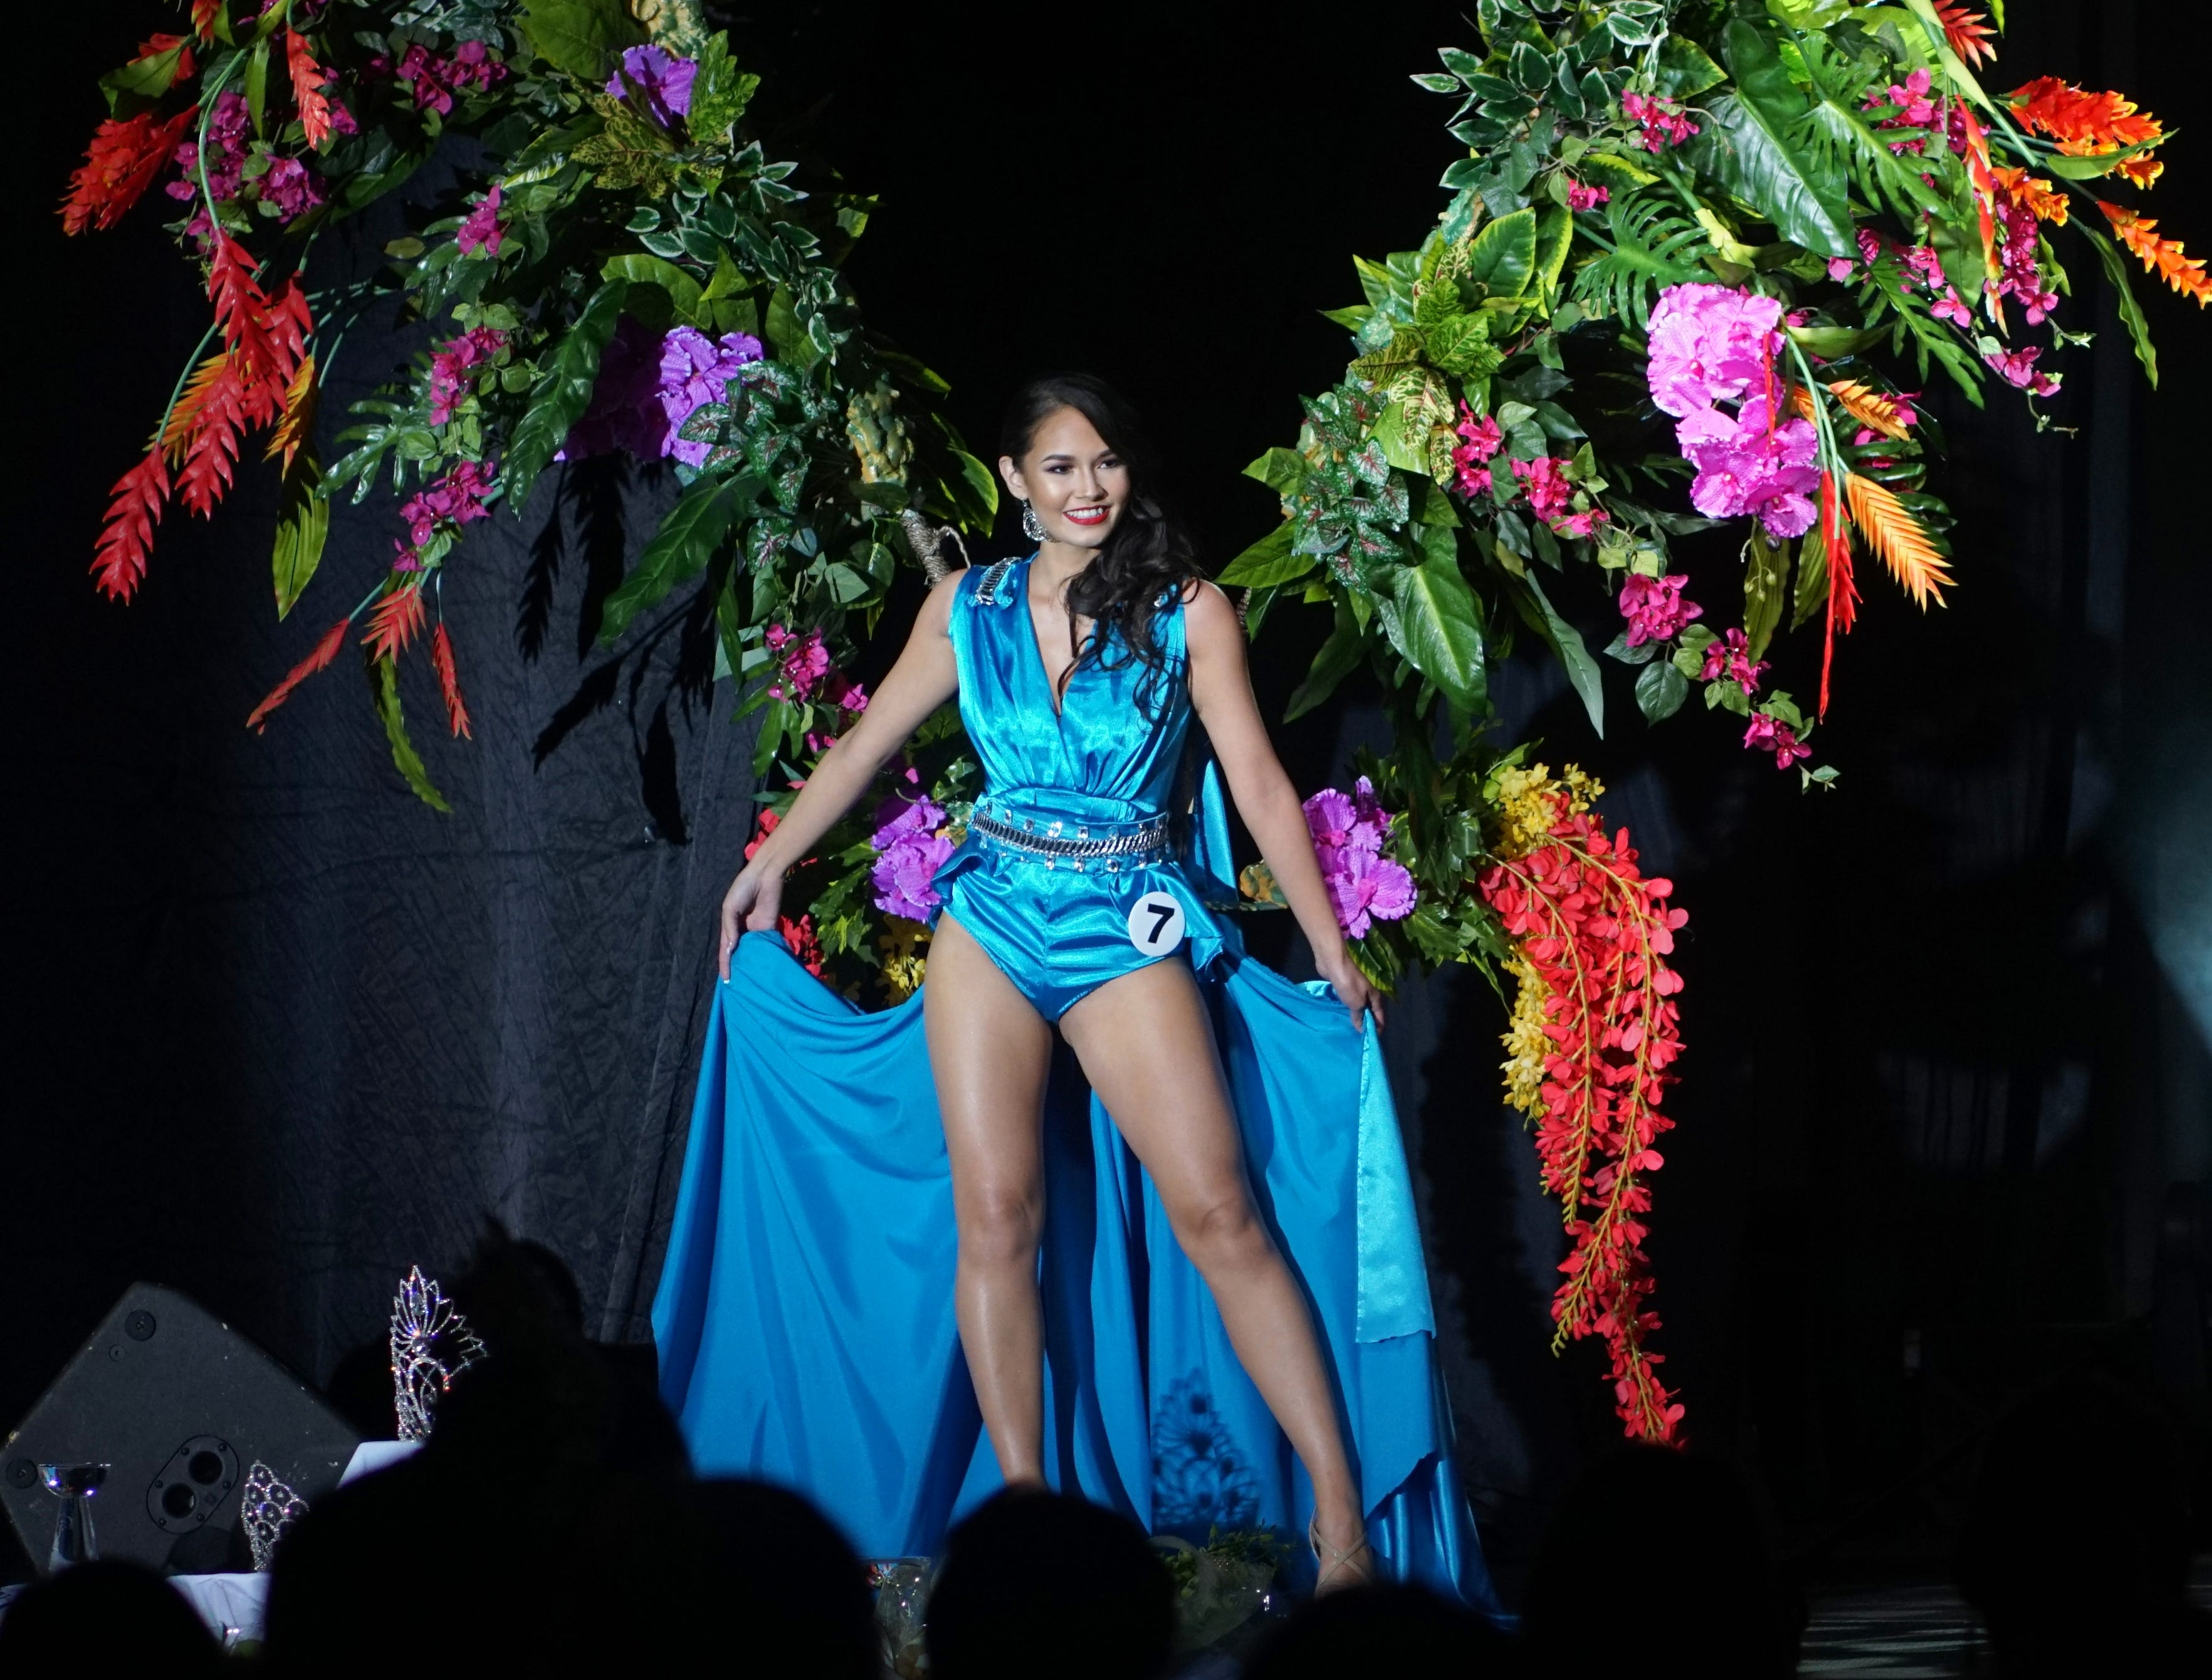 Native Costume portion of the Miss Universe Guam pageant.  Contestant 7 Savana Rose Baza. The pageant was held at  Sheraton Laguna Guam Resort.